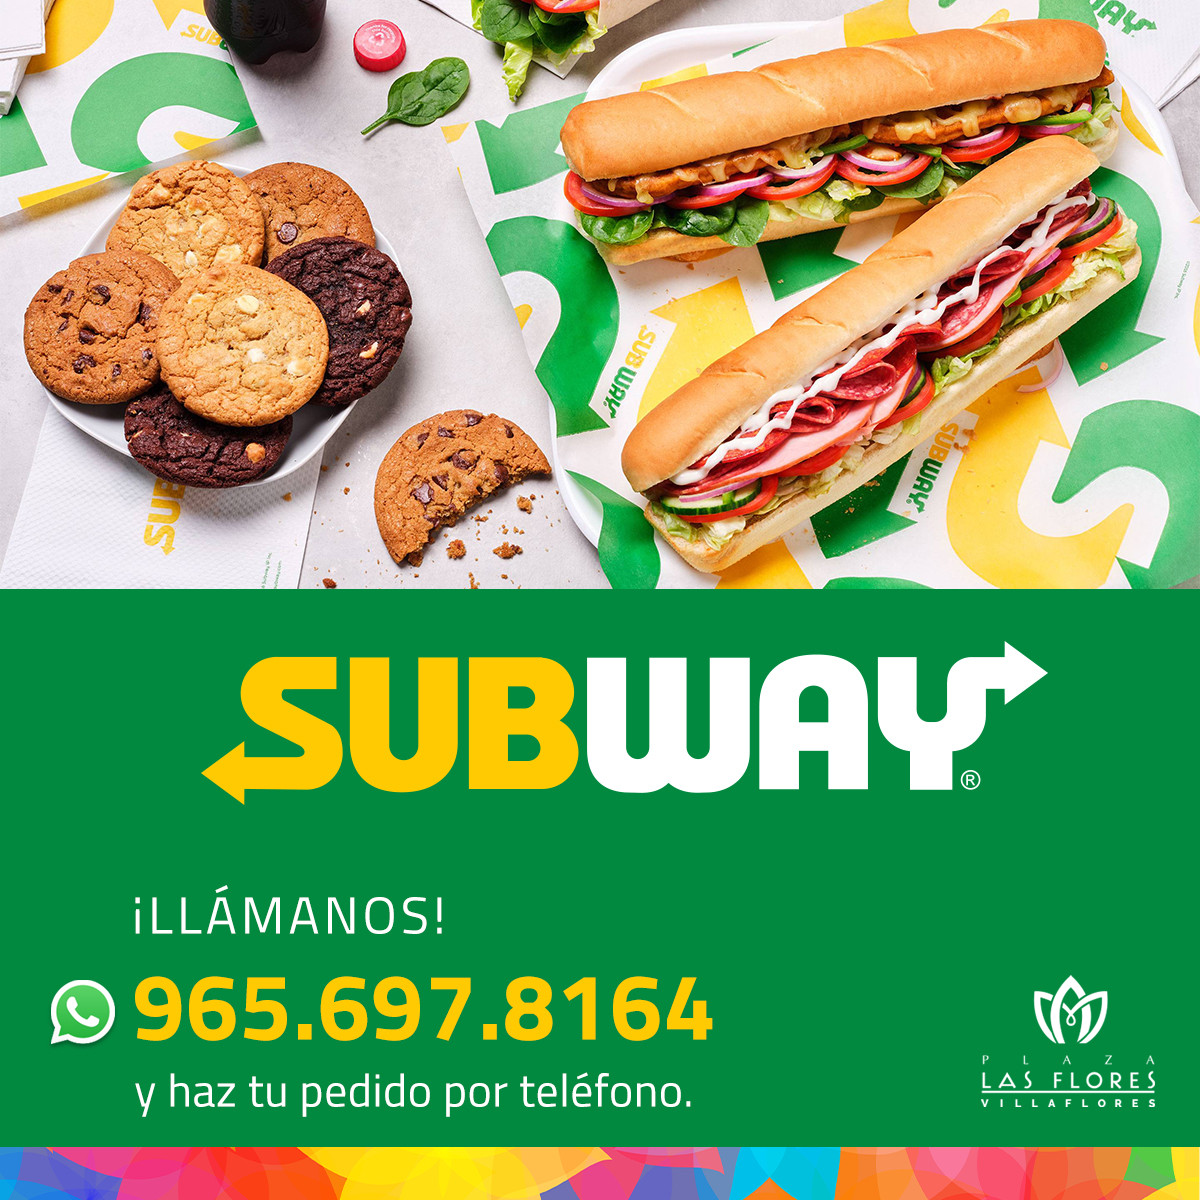 LasFlores-Telefonos-Subway copy